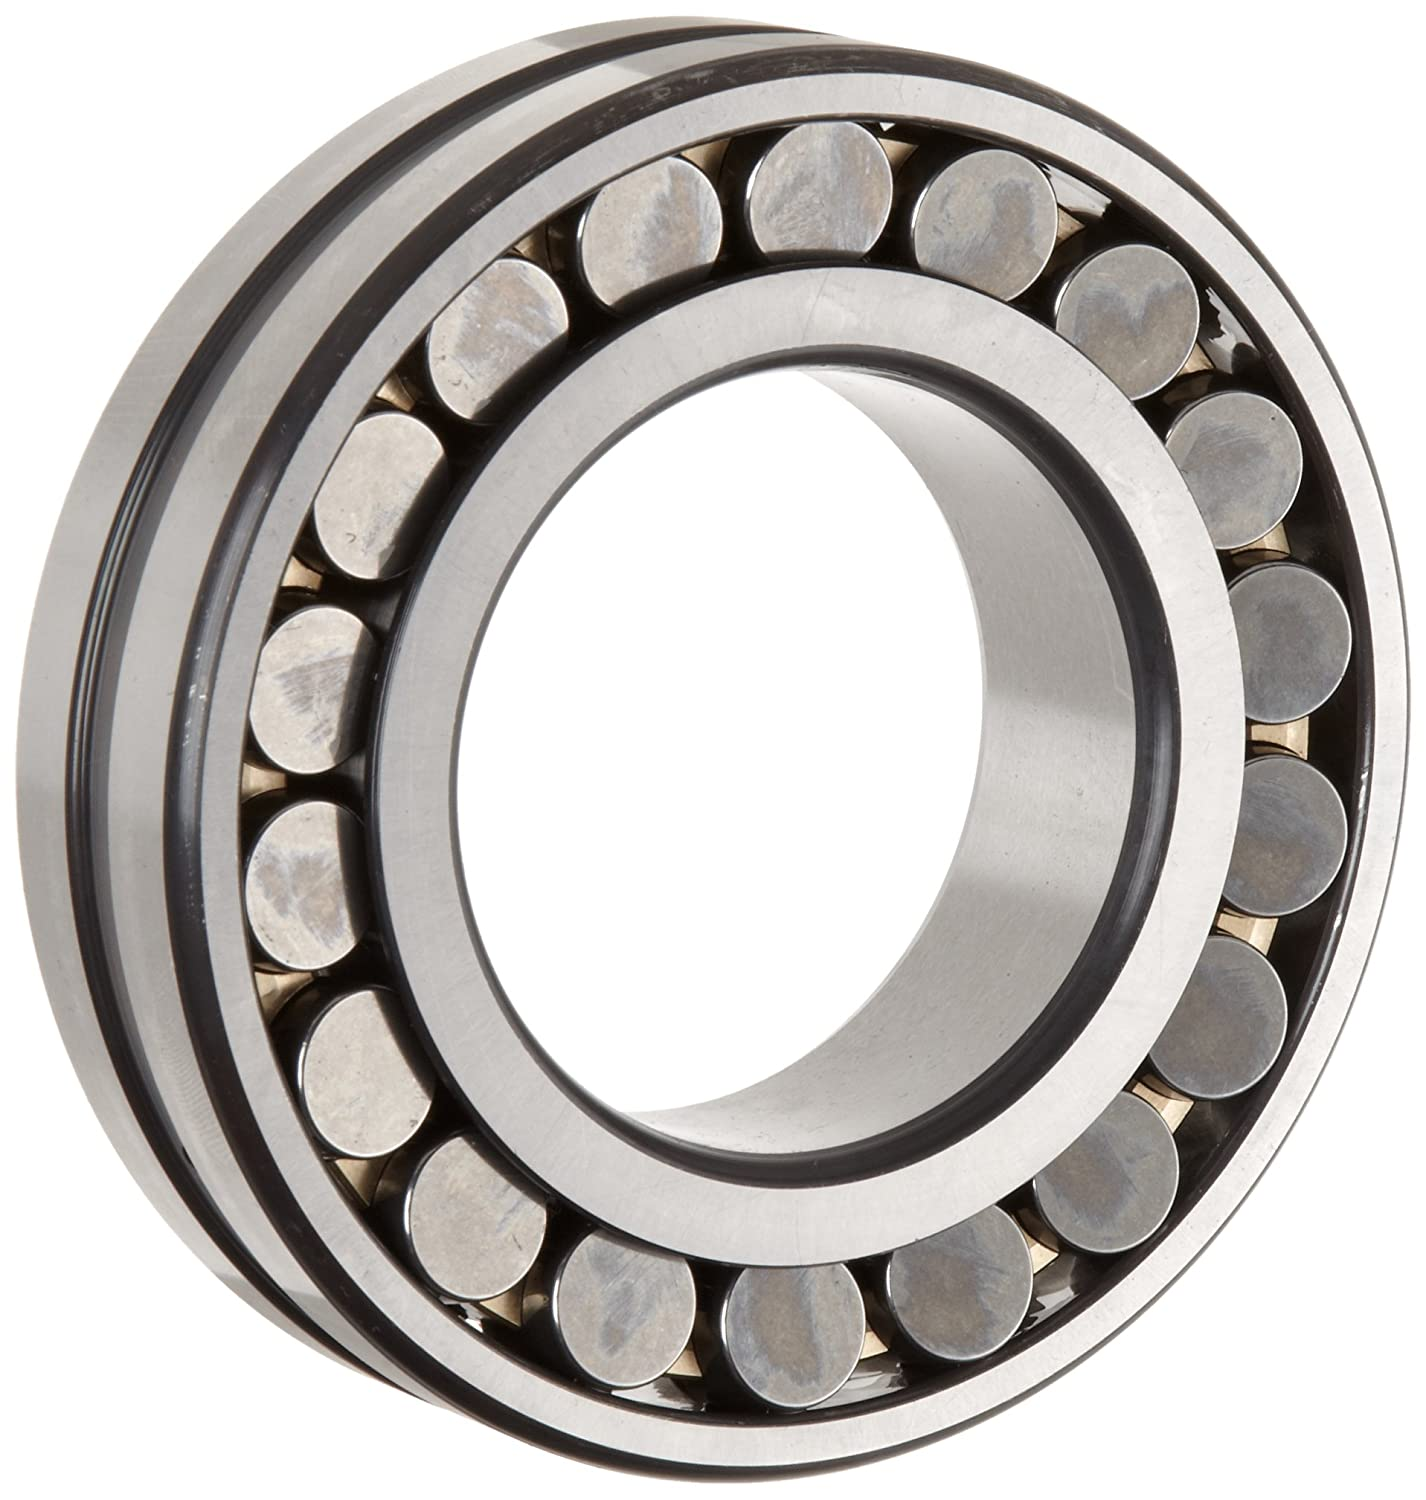 FAG 22236E1AK-M-C3 Spherical Roller Bearing, Tapered Bore, Brass Cage, C3 Clearance, Metric, 180mm ID, 320mm OD, 86mm Width, 2400rpm Maximum Rotational Speed, 1660kN Static Load Capacity, 1370kN Dynamic Load Capacity